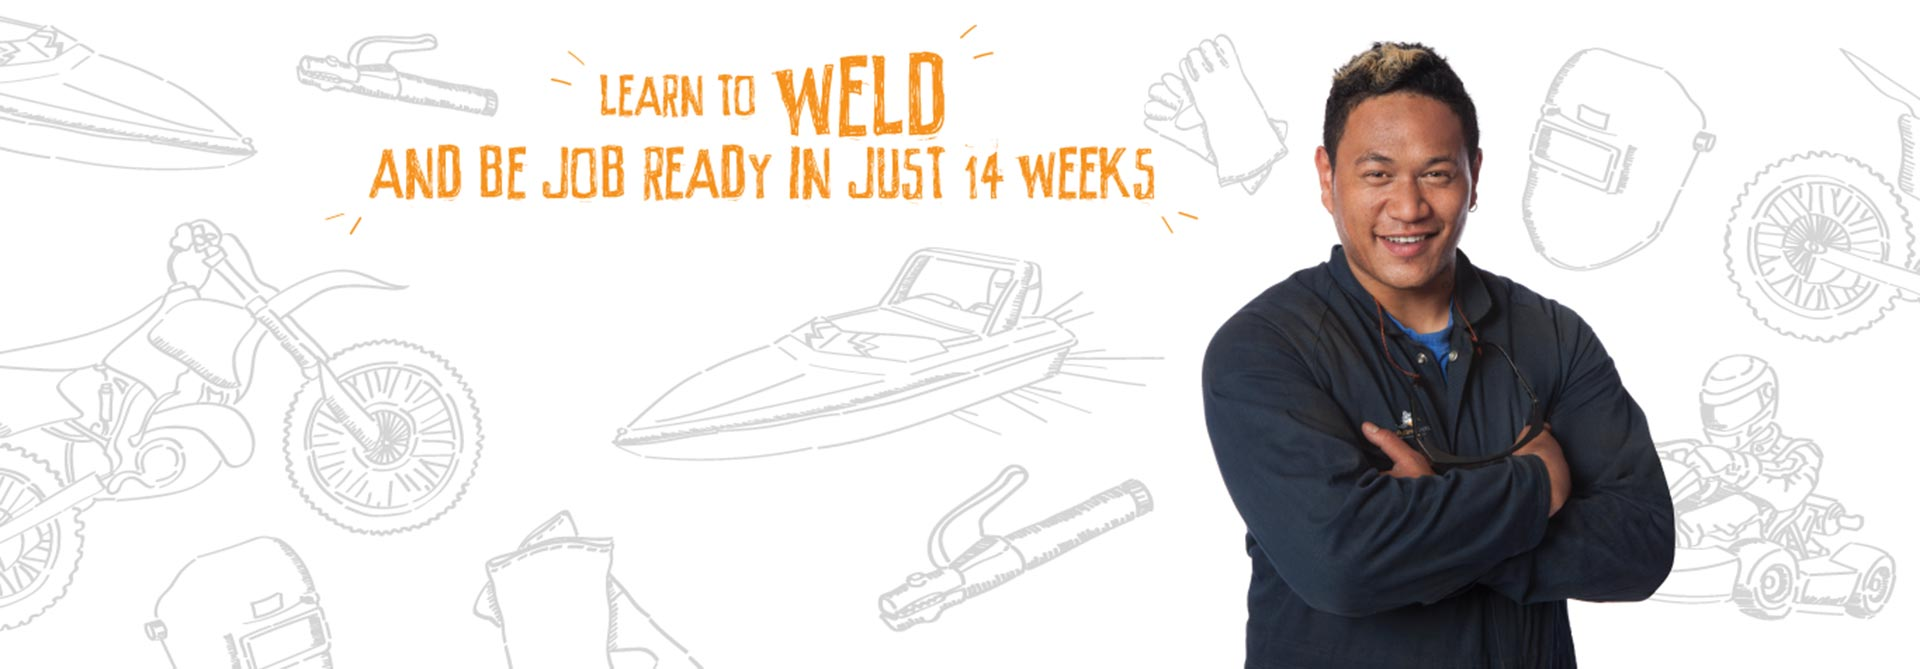 Welding level 3, 4 and starter courses available